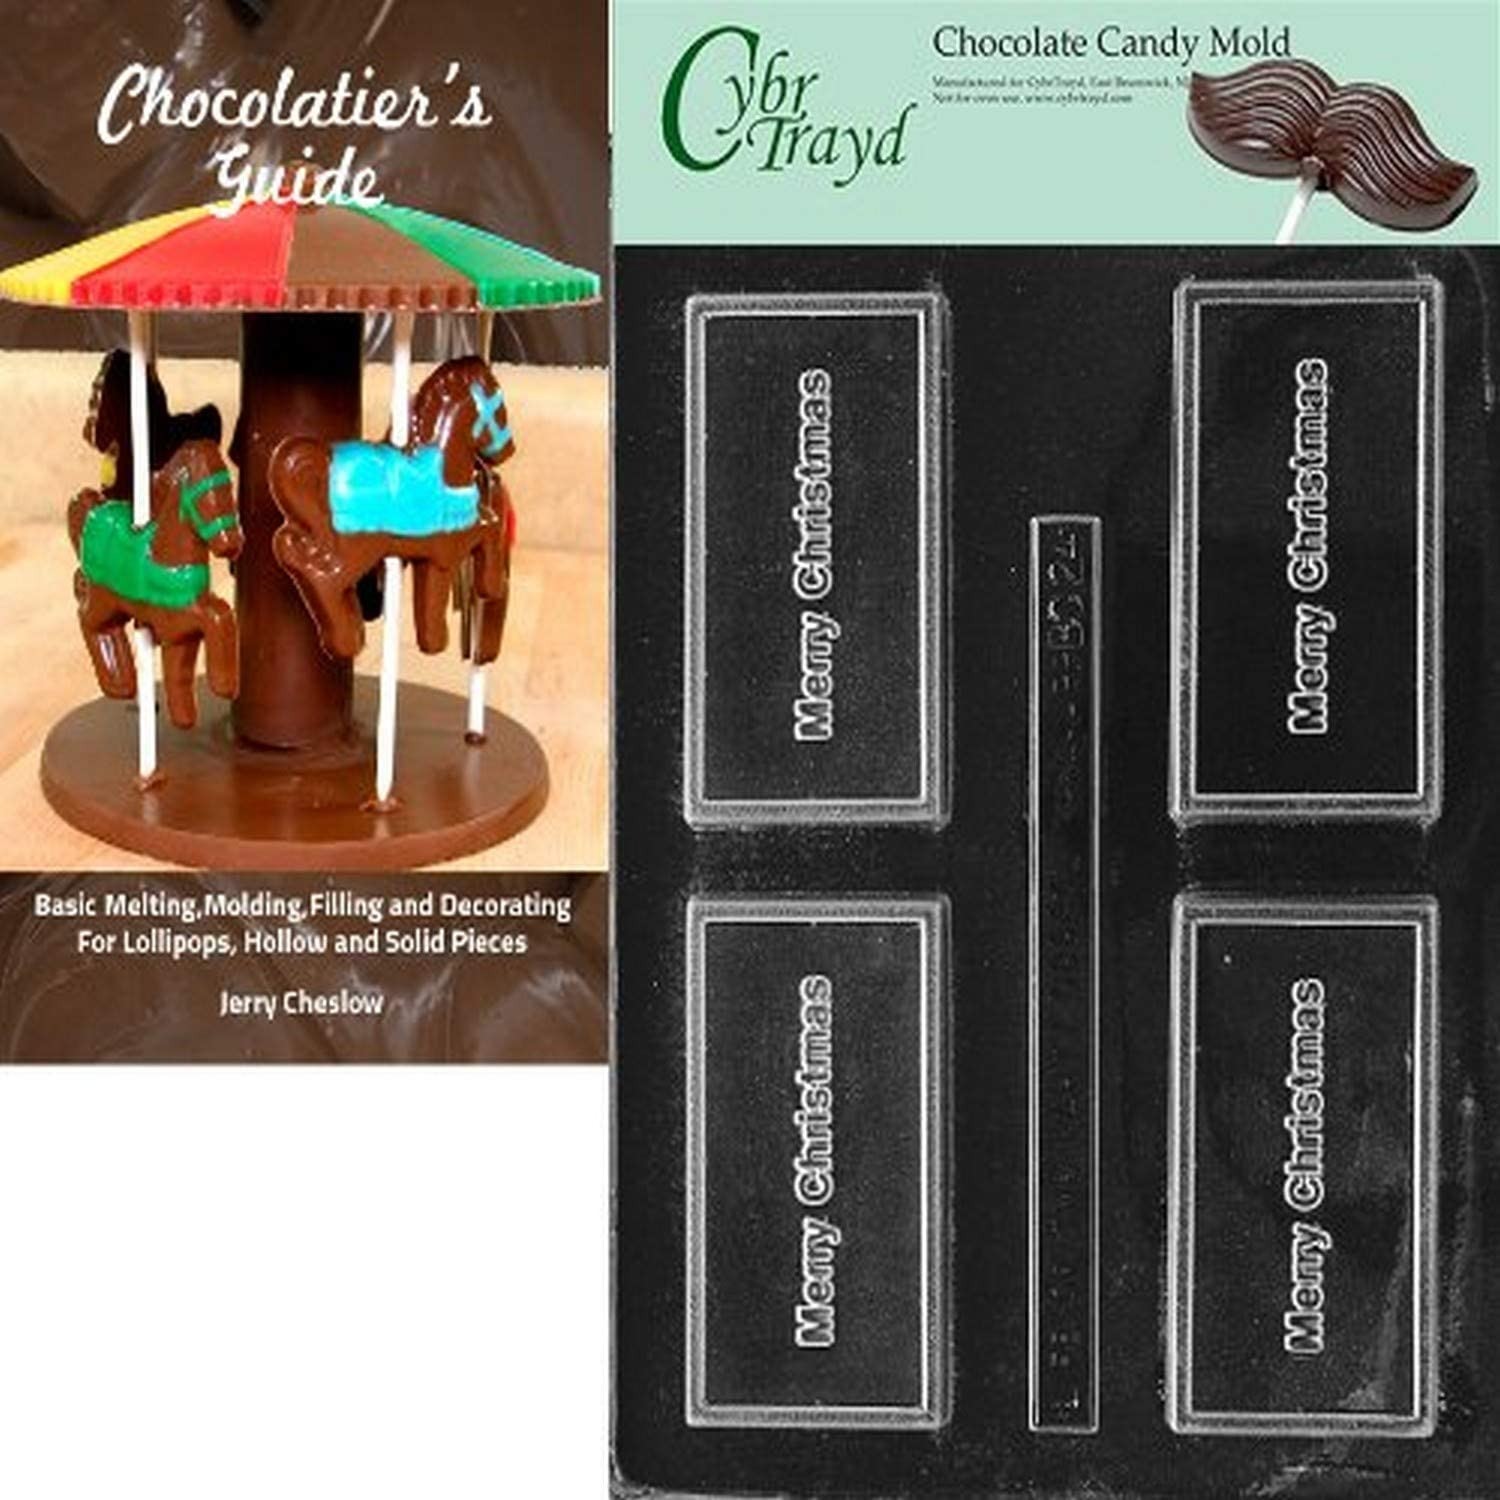 Cybrtrayd Bk-BC024 Merry Christmas Business Card Chocolate Candy Mold with Chocolatiers Guide